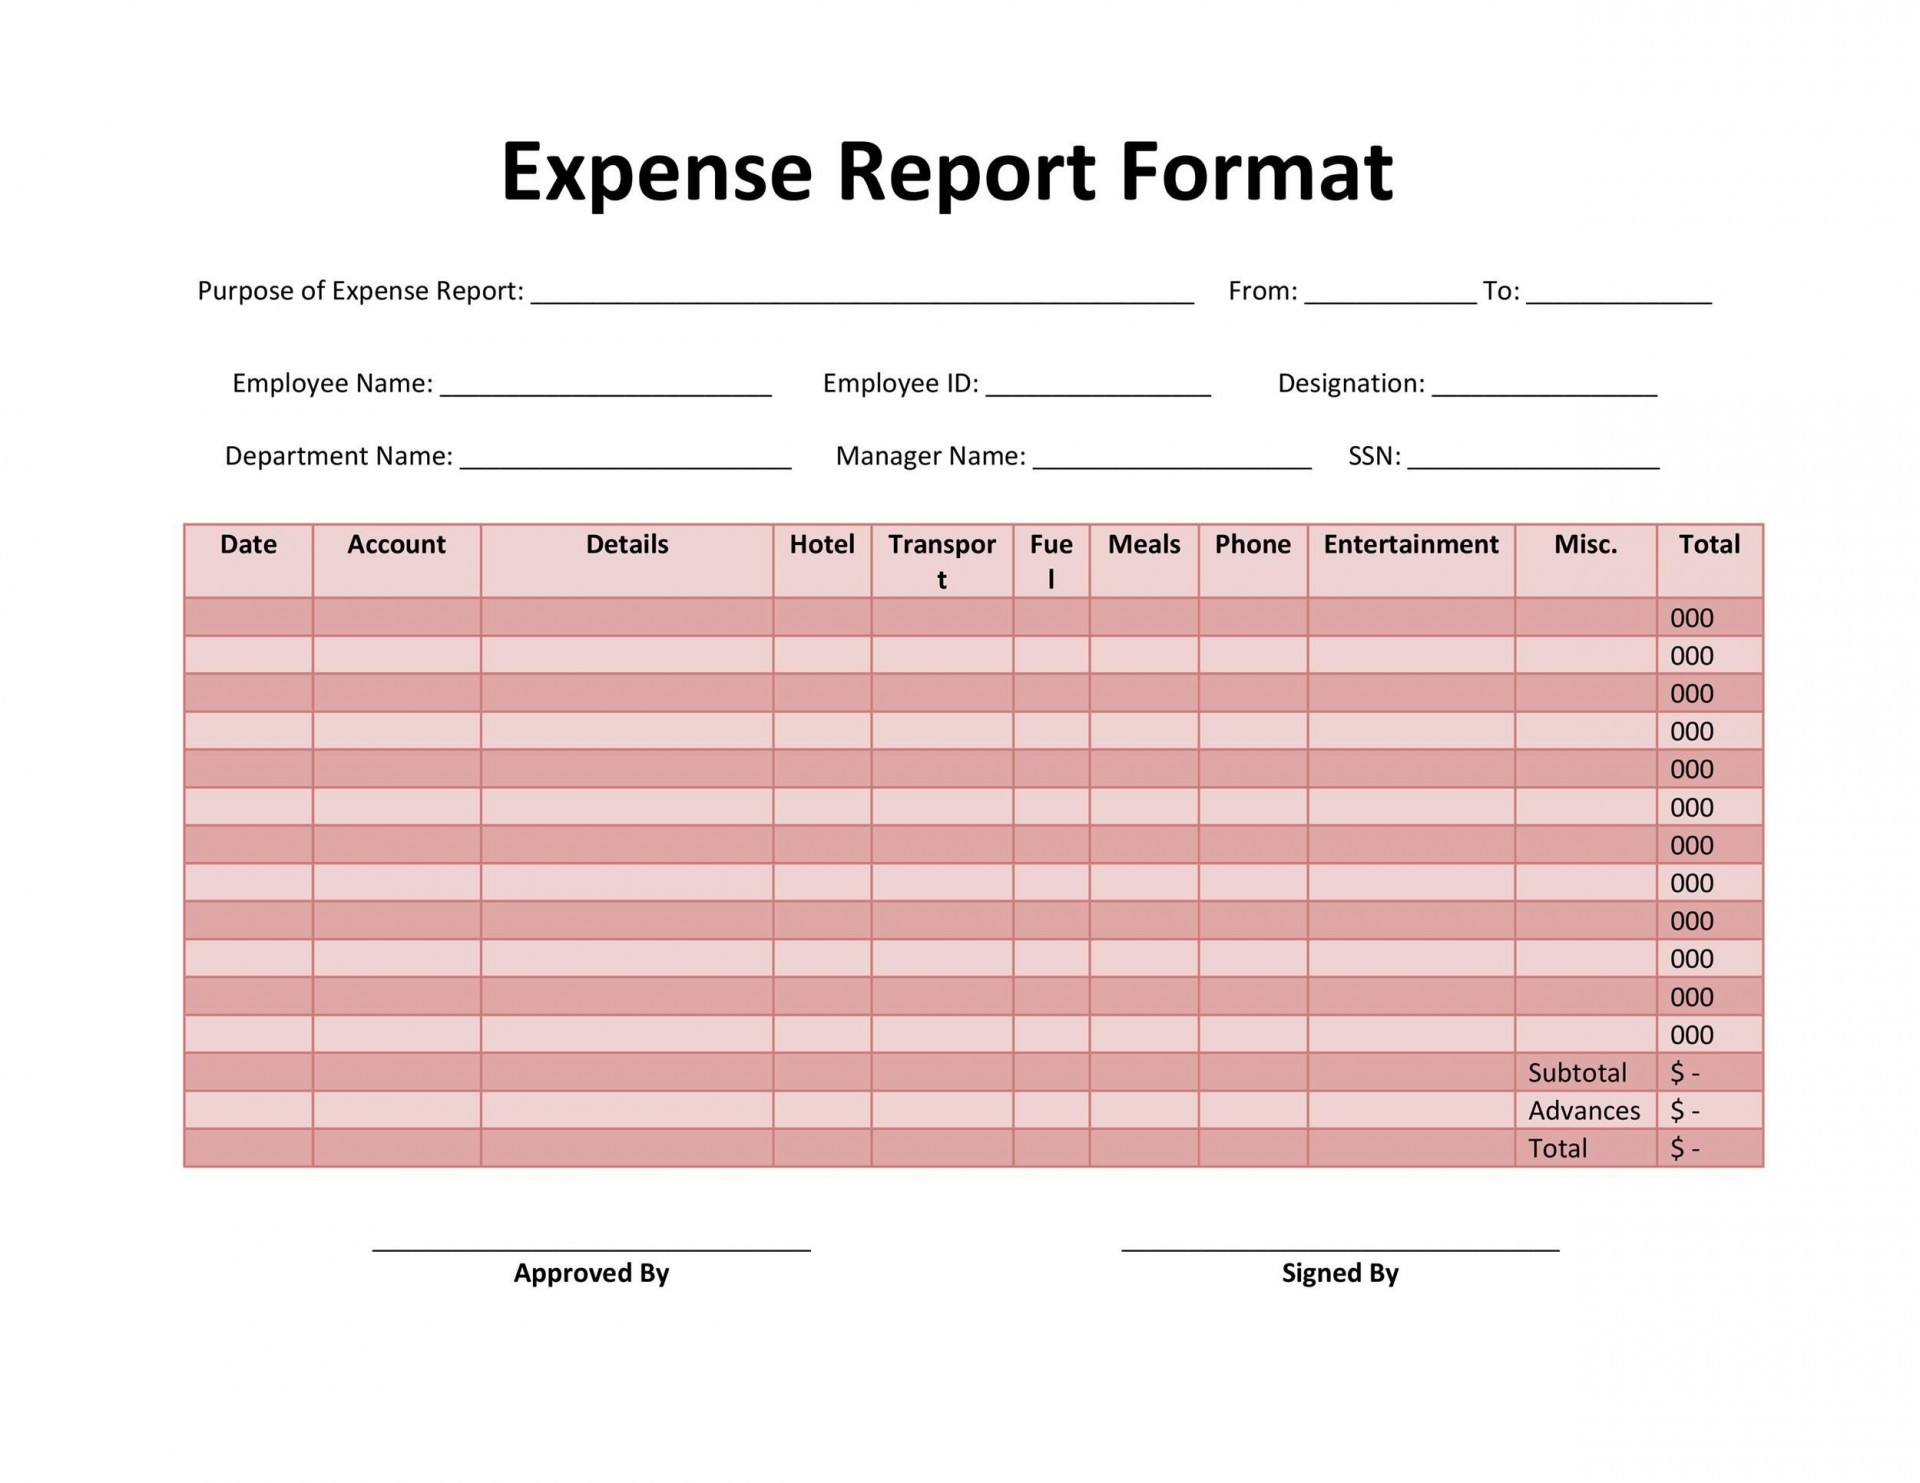 005 Surprising Free Blank Expense Report Form Highest Quality  Forms Template1920